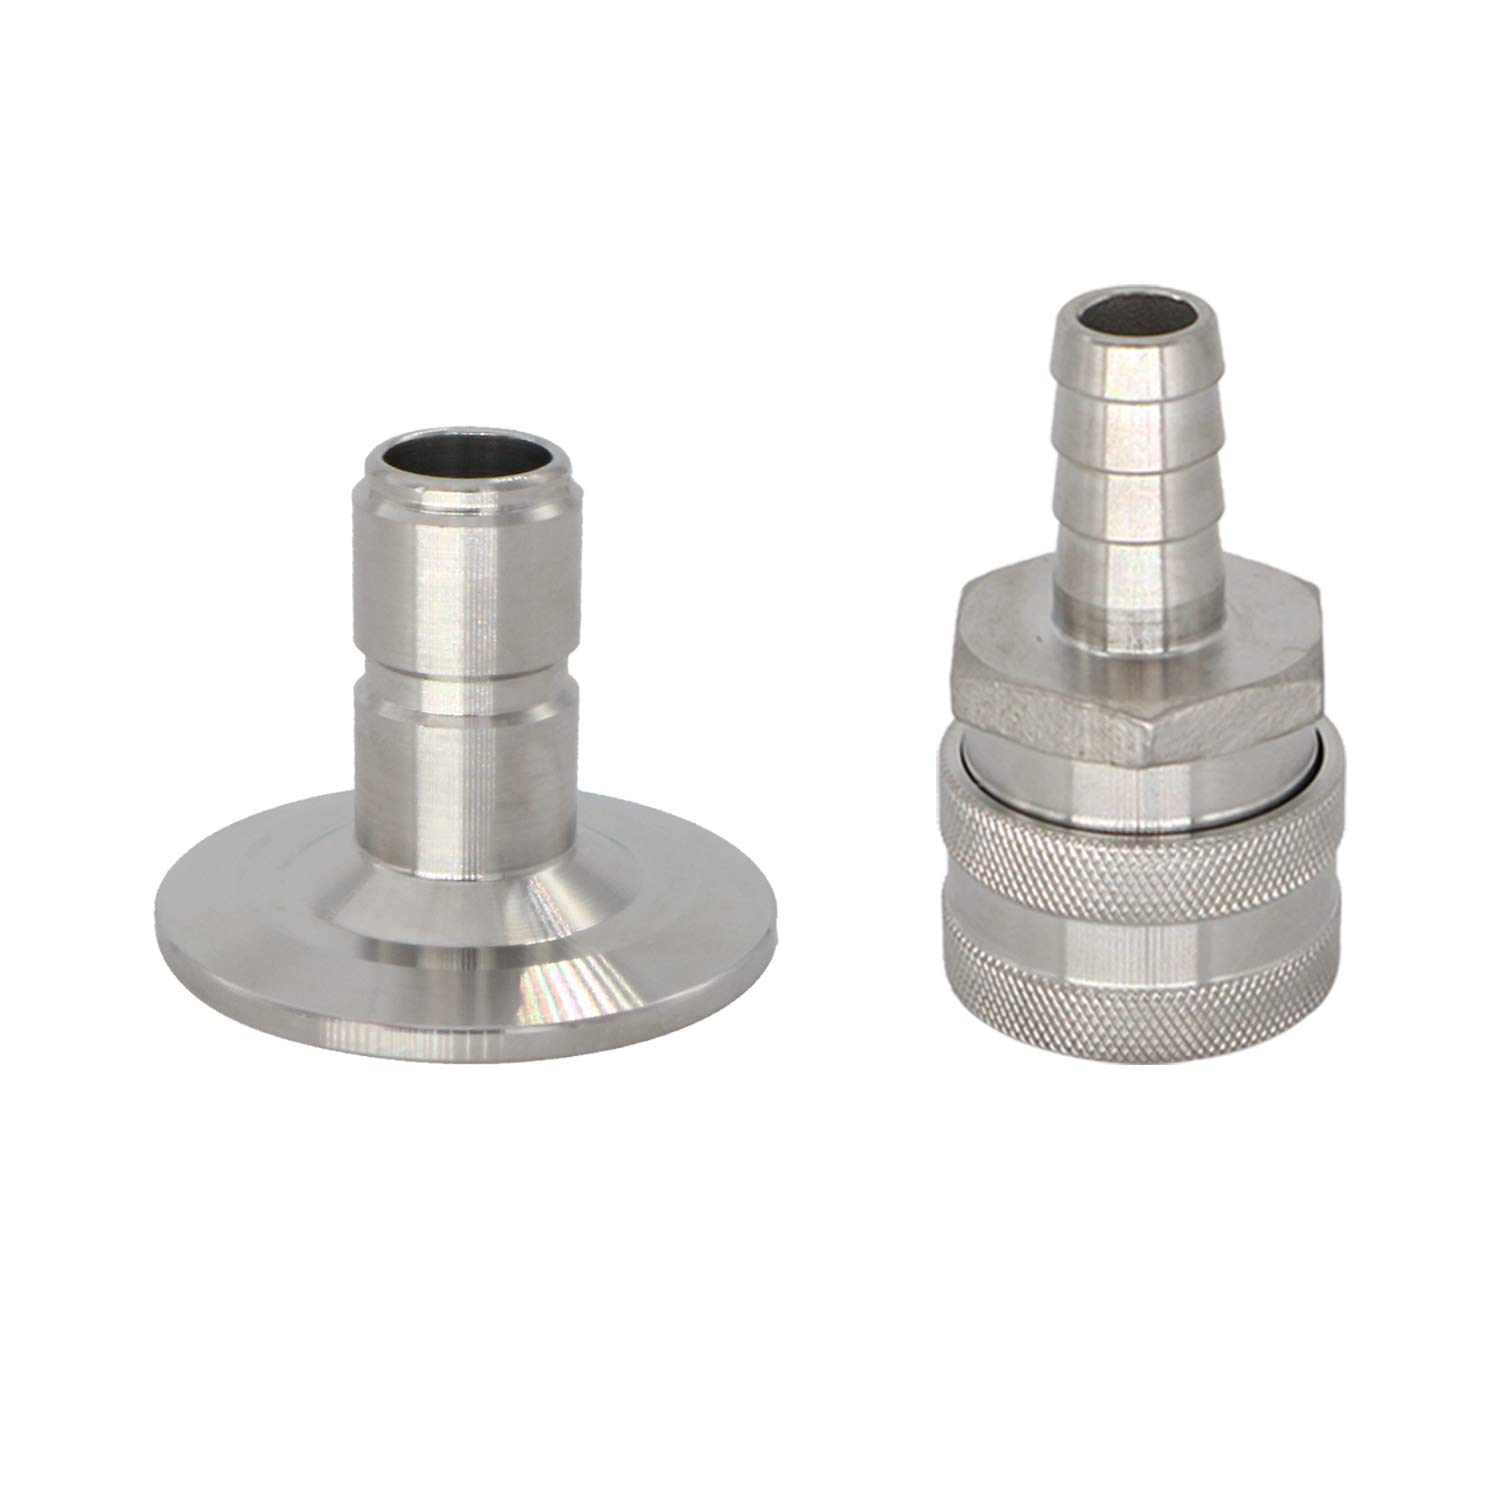 SS304 Sanitary Brewer 1.5''Tri Clamp Quick Disconnect Set,1.5''Tri Clamp Quick Disconnect Post (1/2'' Barb)